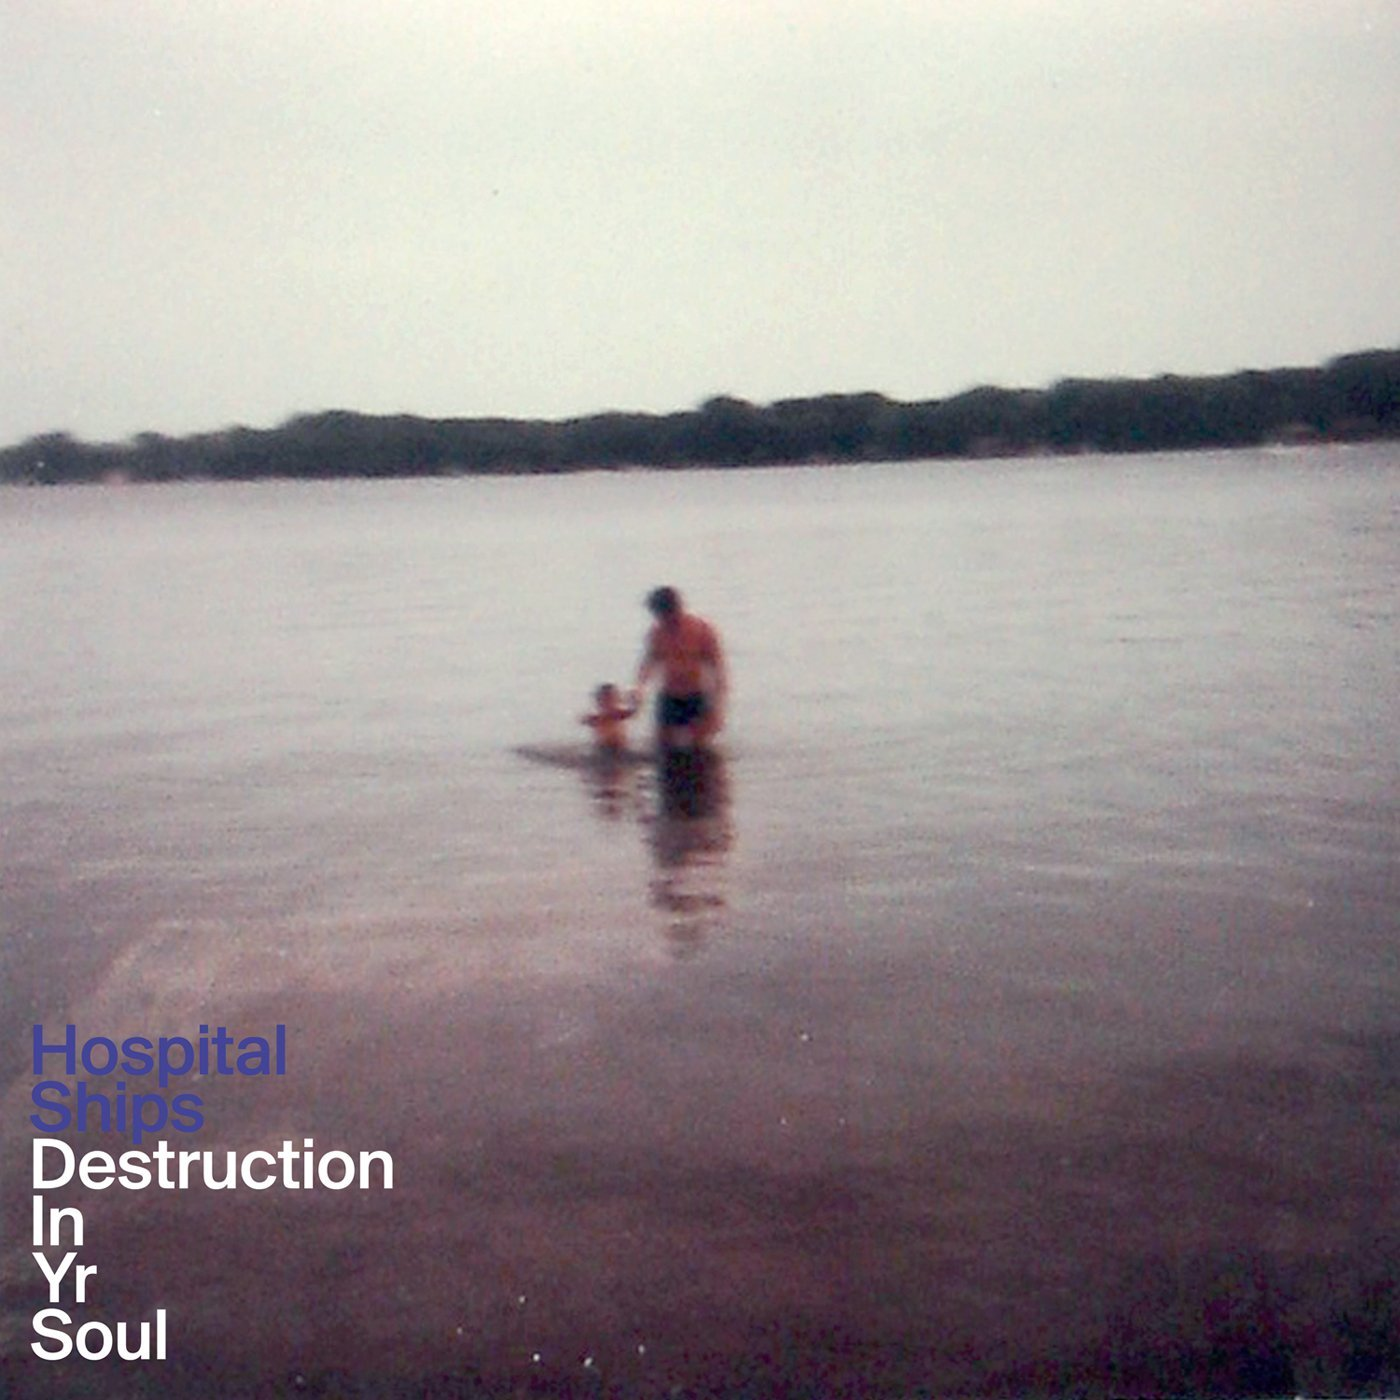 hospital-ships-destruction-in-yr-soul-cover